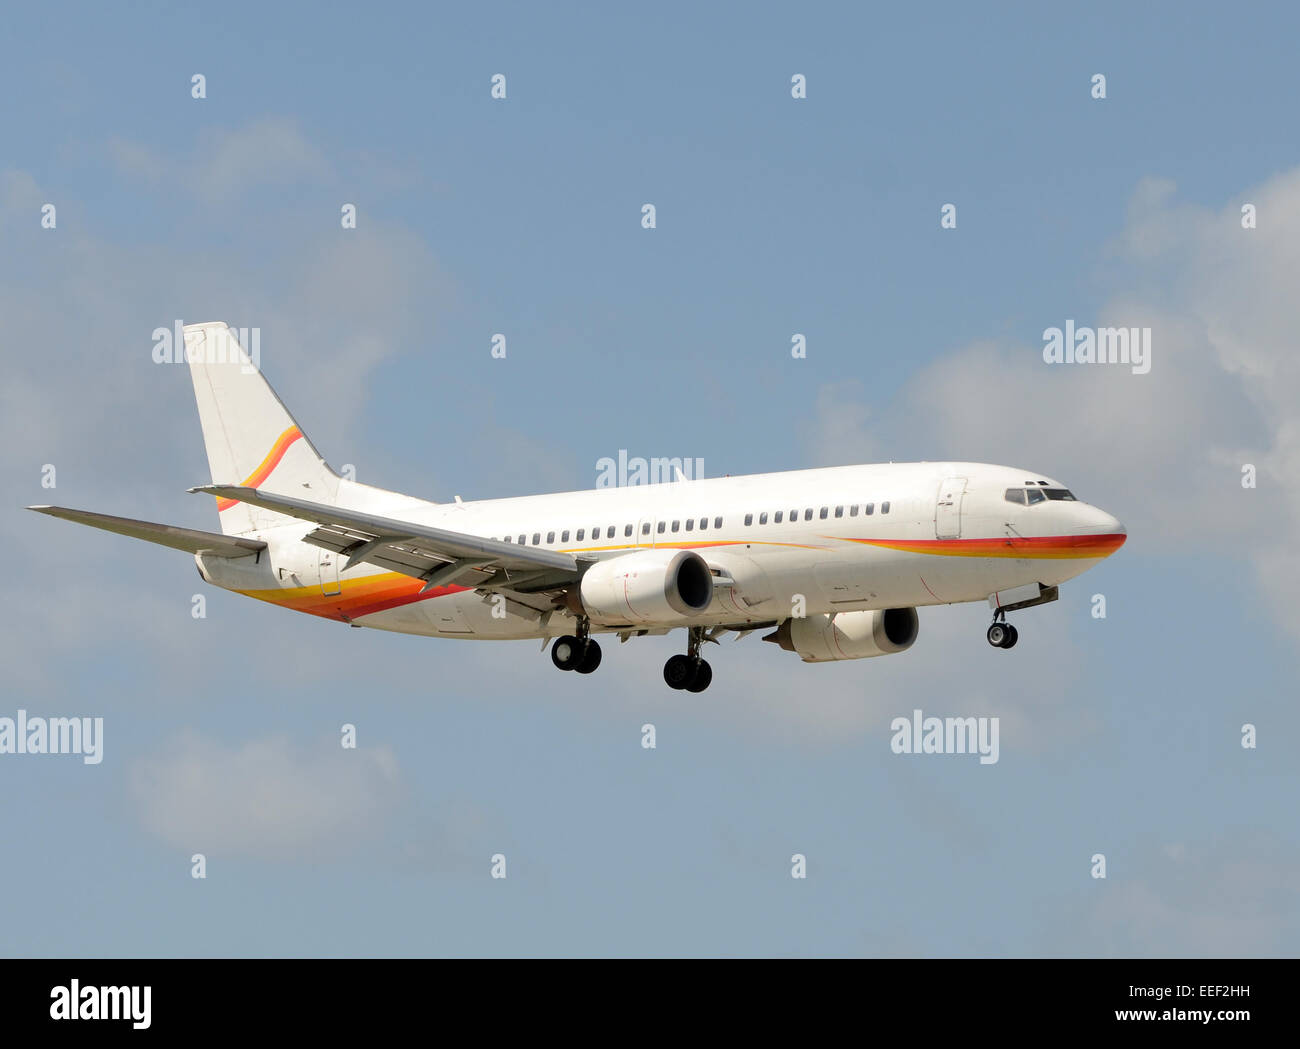 Passenger jet airplane landing with gear down Boeing 737 - Stock Image